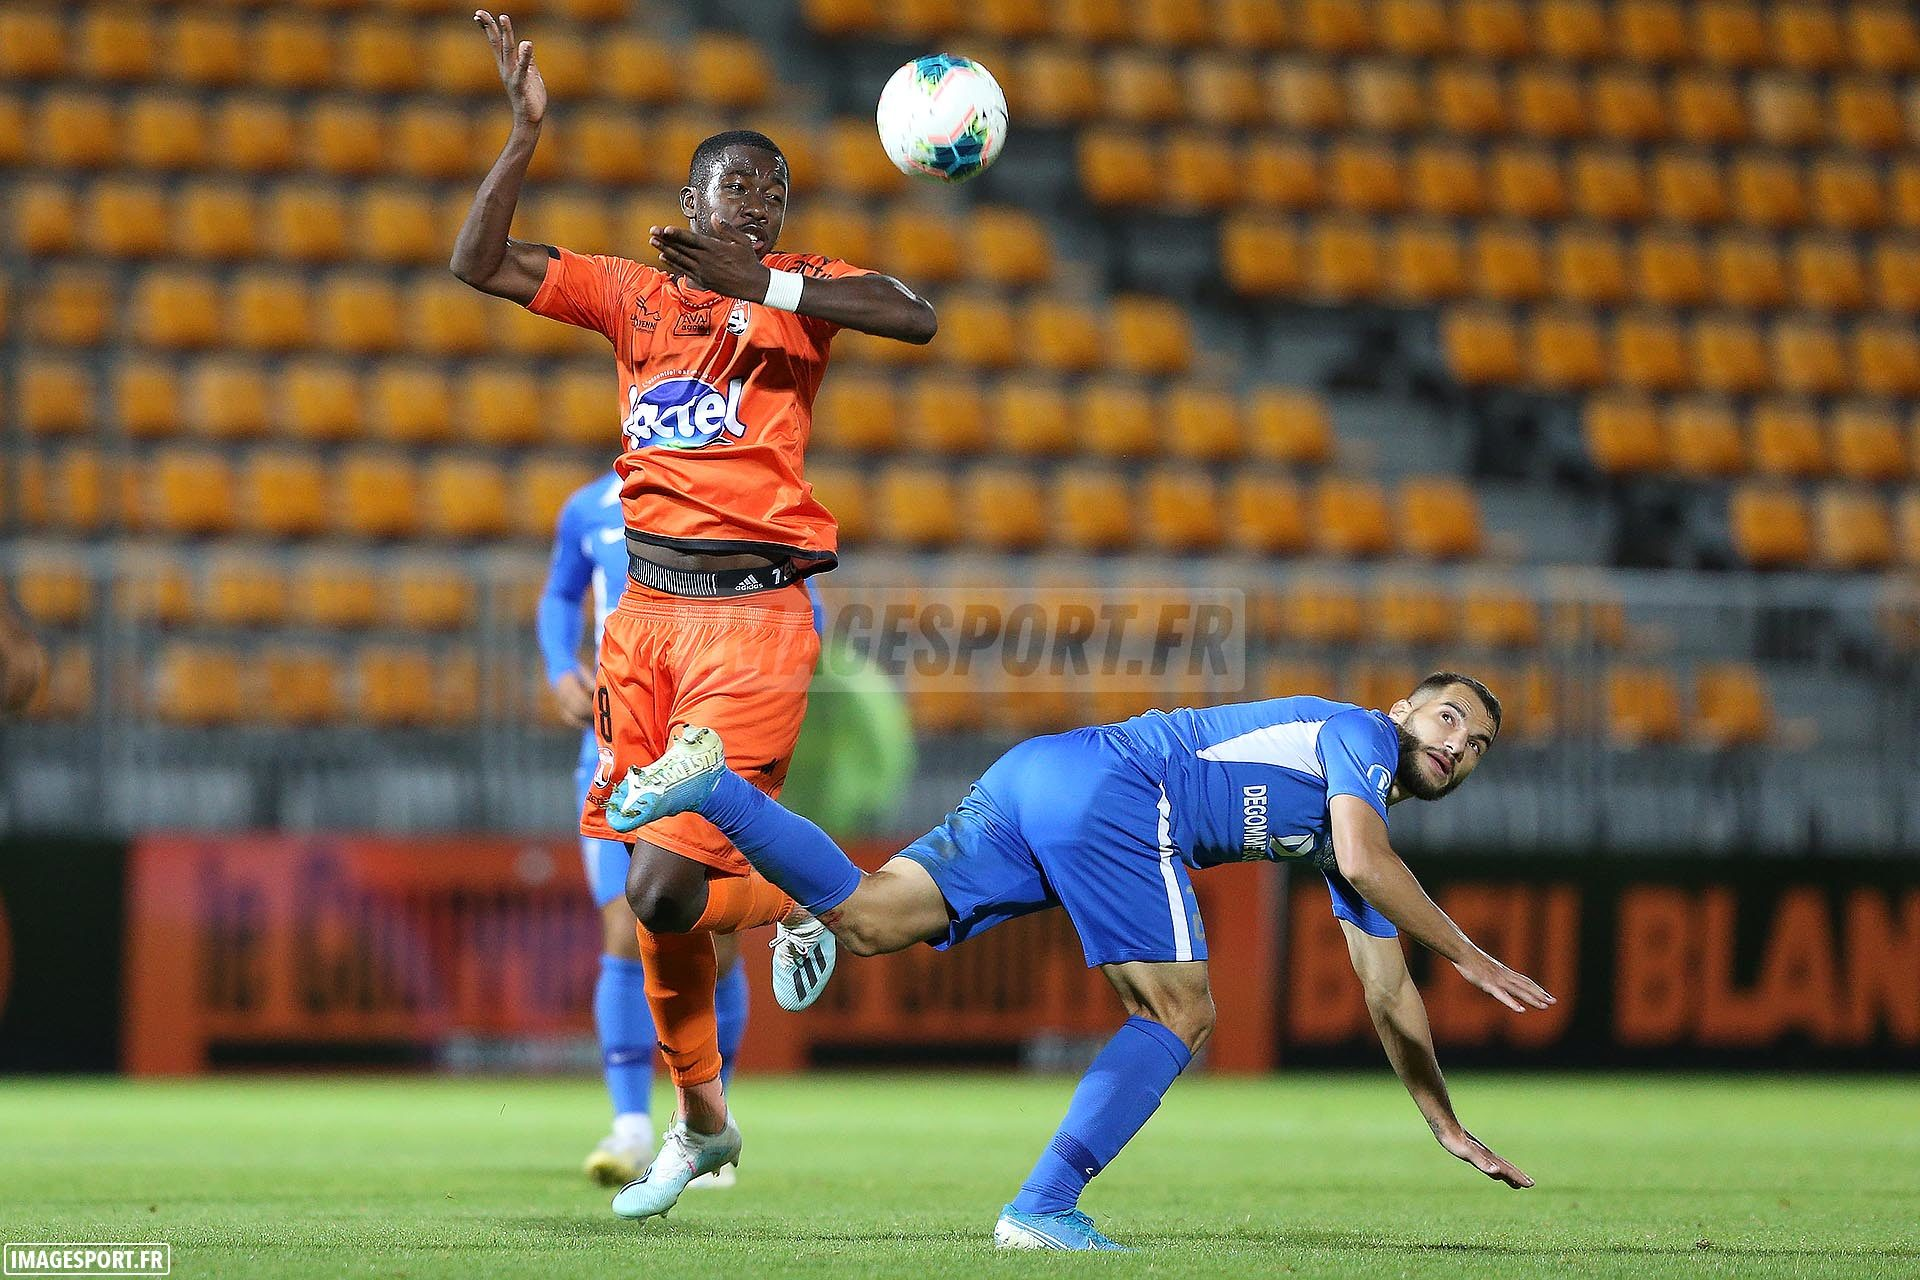 national-stade-lavallois-fbbp01-2019-2020_28